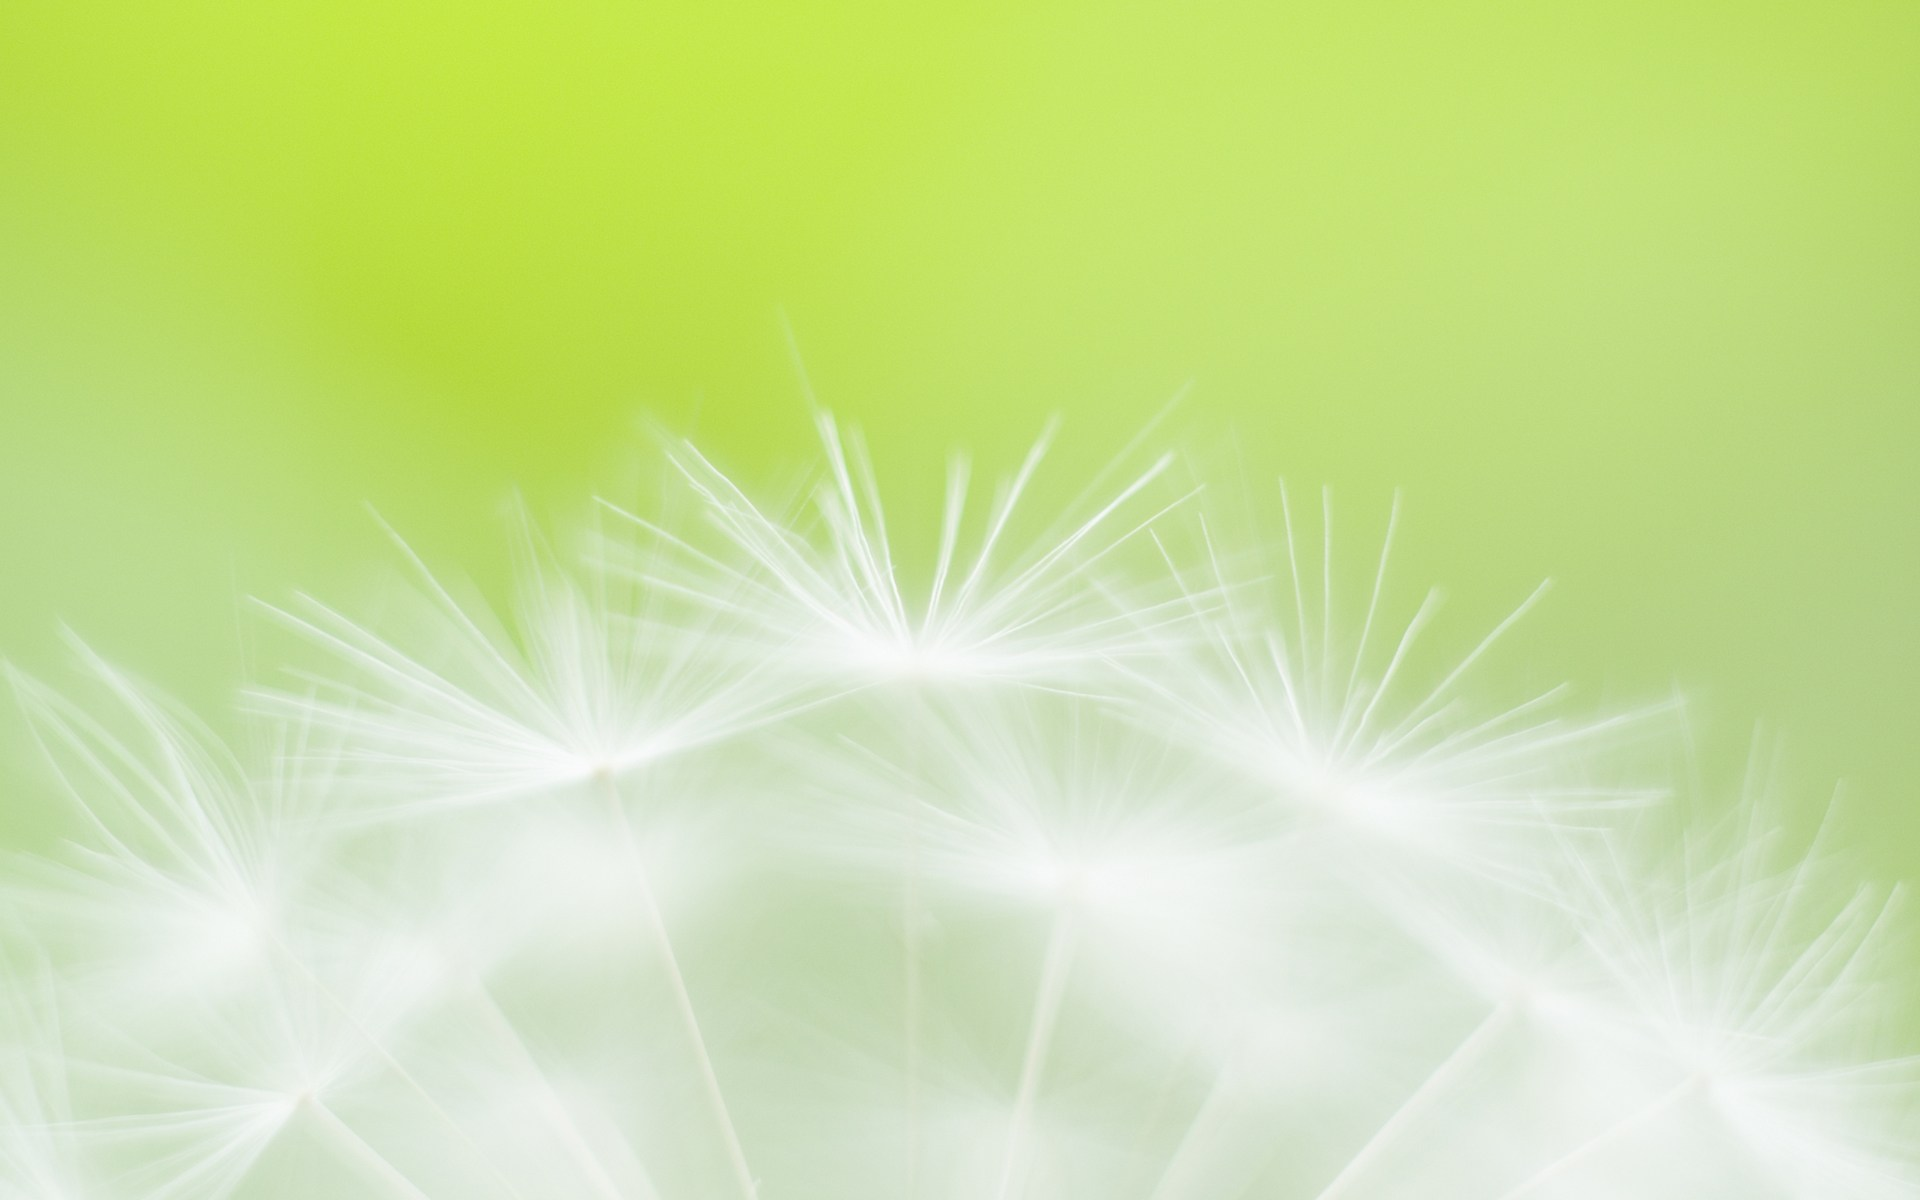 Light Effect Hd Wallpaper Green Flower Soft Focus Photography Wallpaper 3618